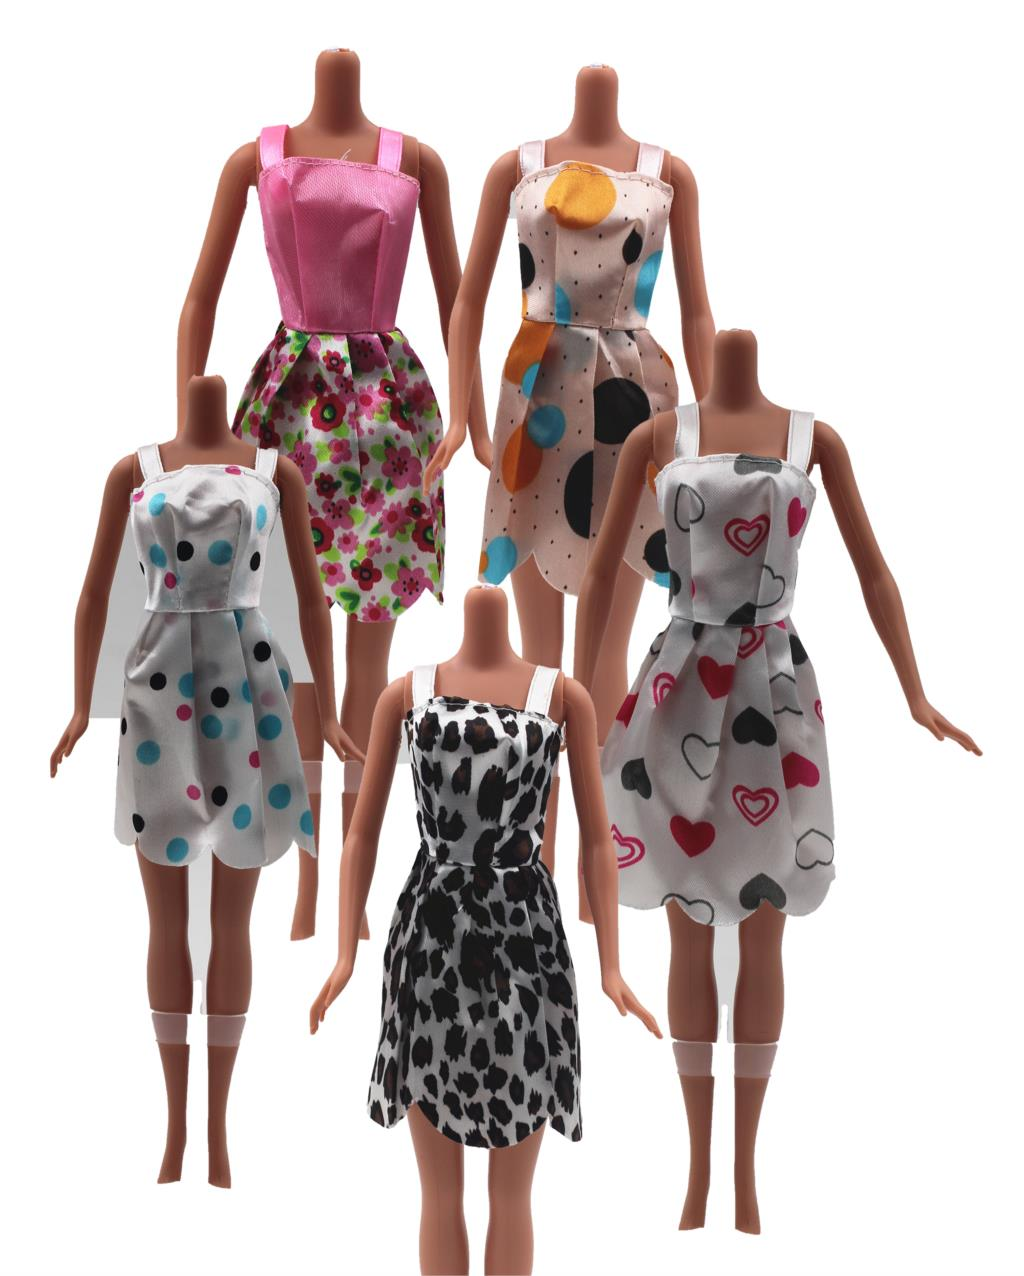 Scorching One Set=5 Pcs Combine Kinds Latest Stunning Handmade Social gathering Garments Style Costume For Barbie Doll Finest Present Toys 5SD-015-Y